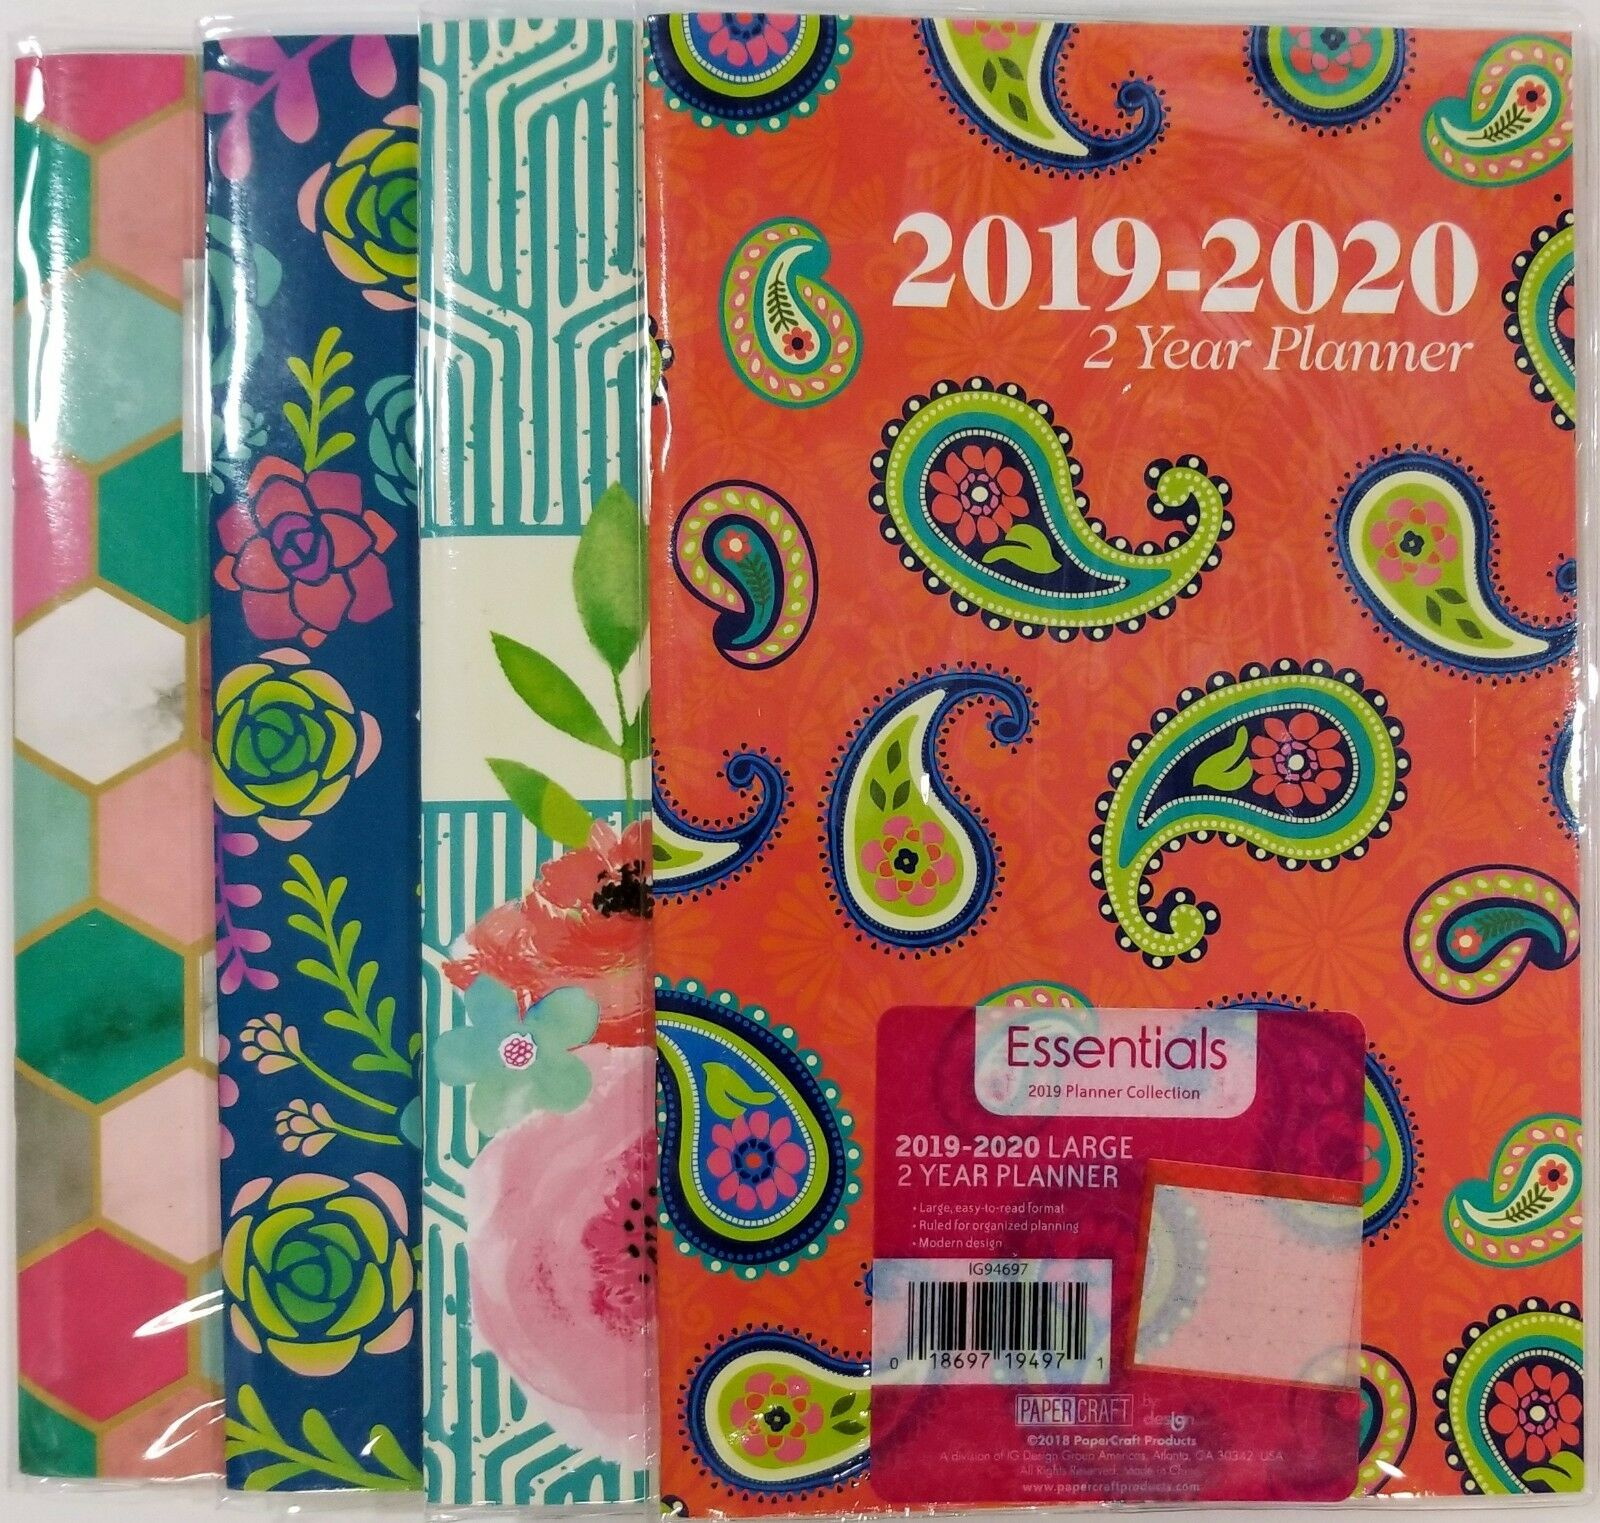 2019 2020 two year monthly planner calendar 5 x 8 colors may vary 1 of 12free shipping